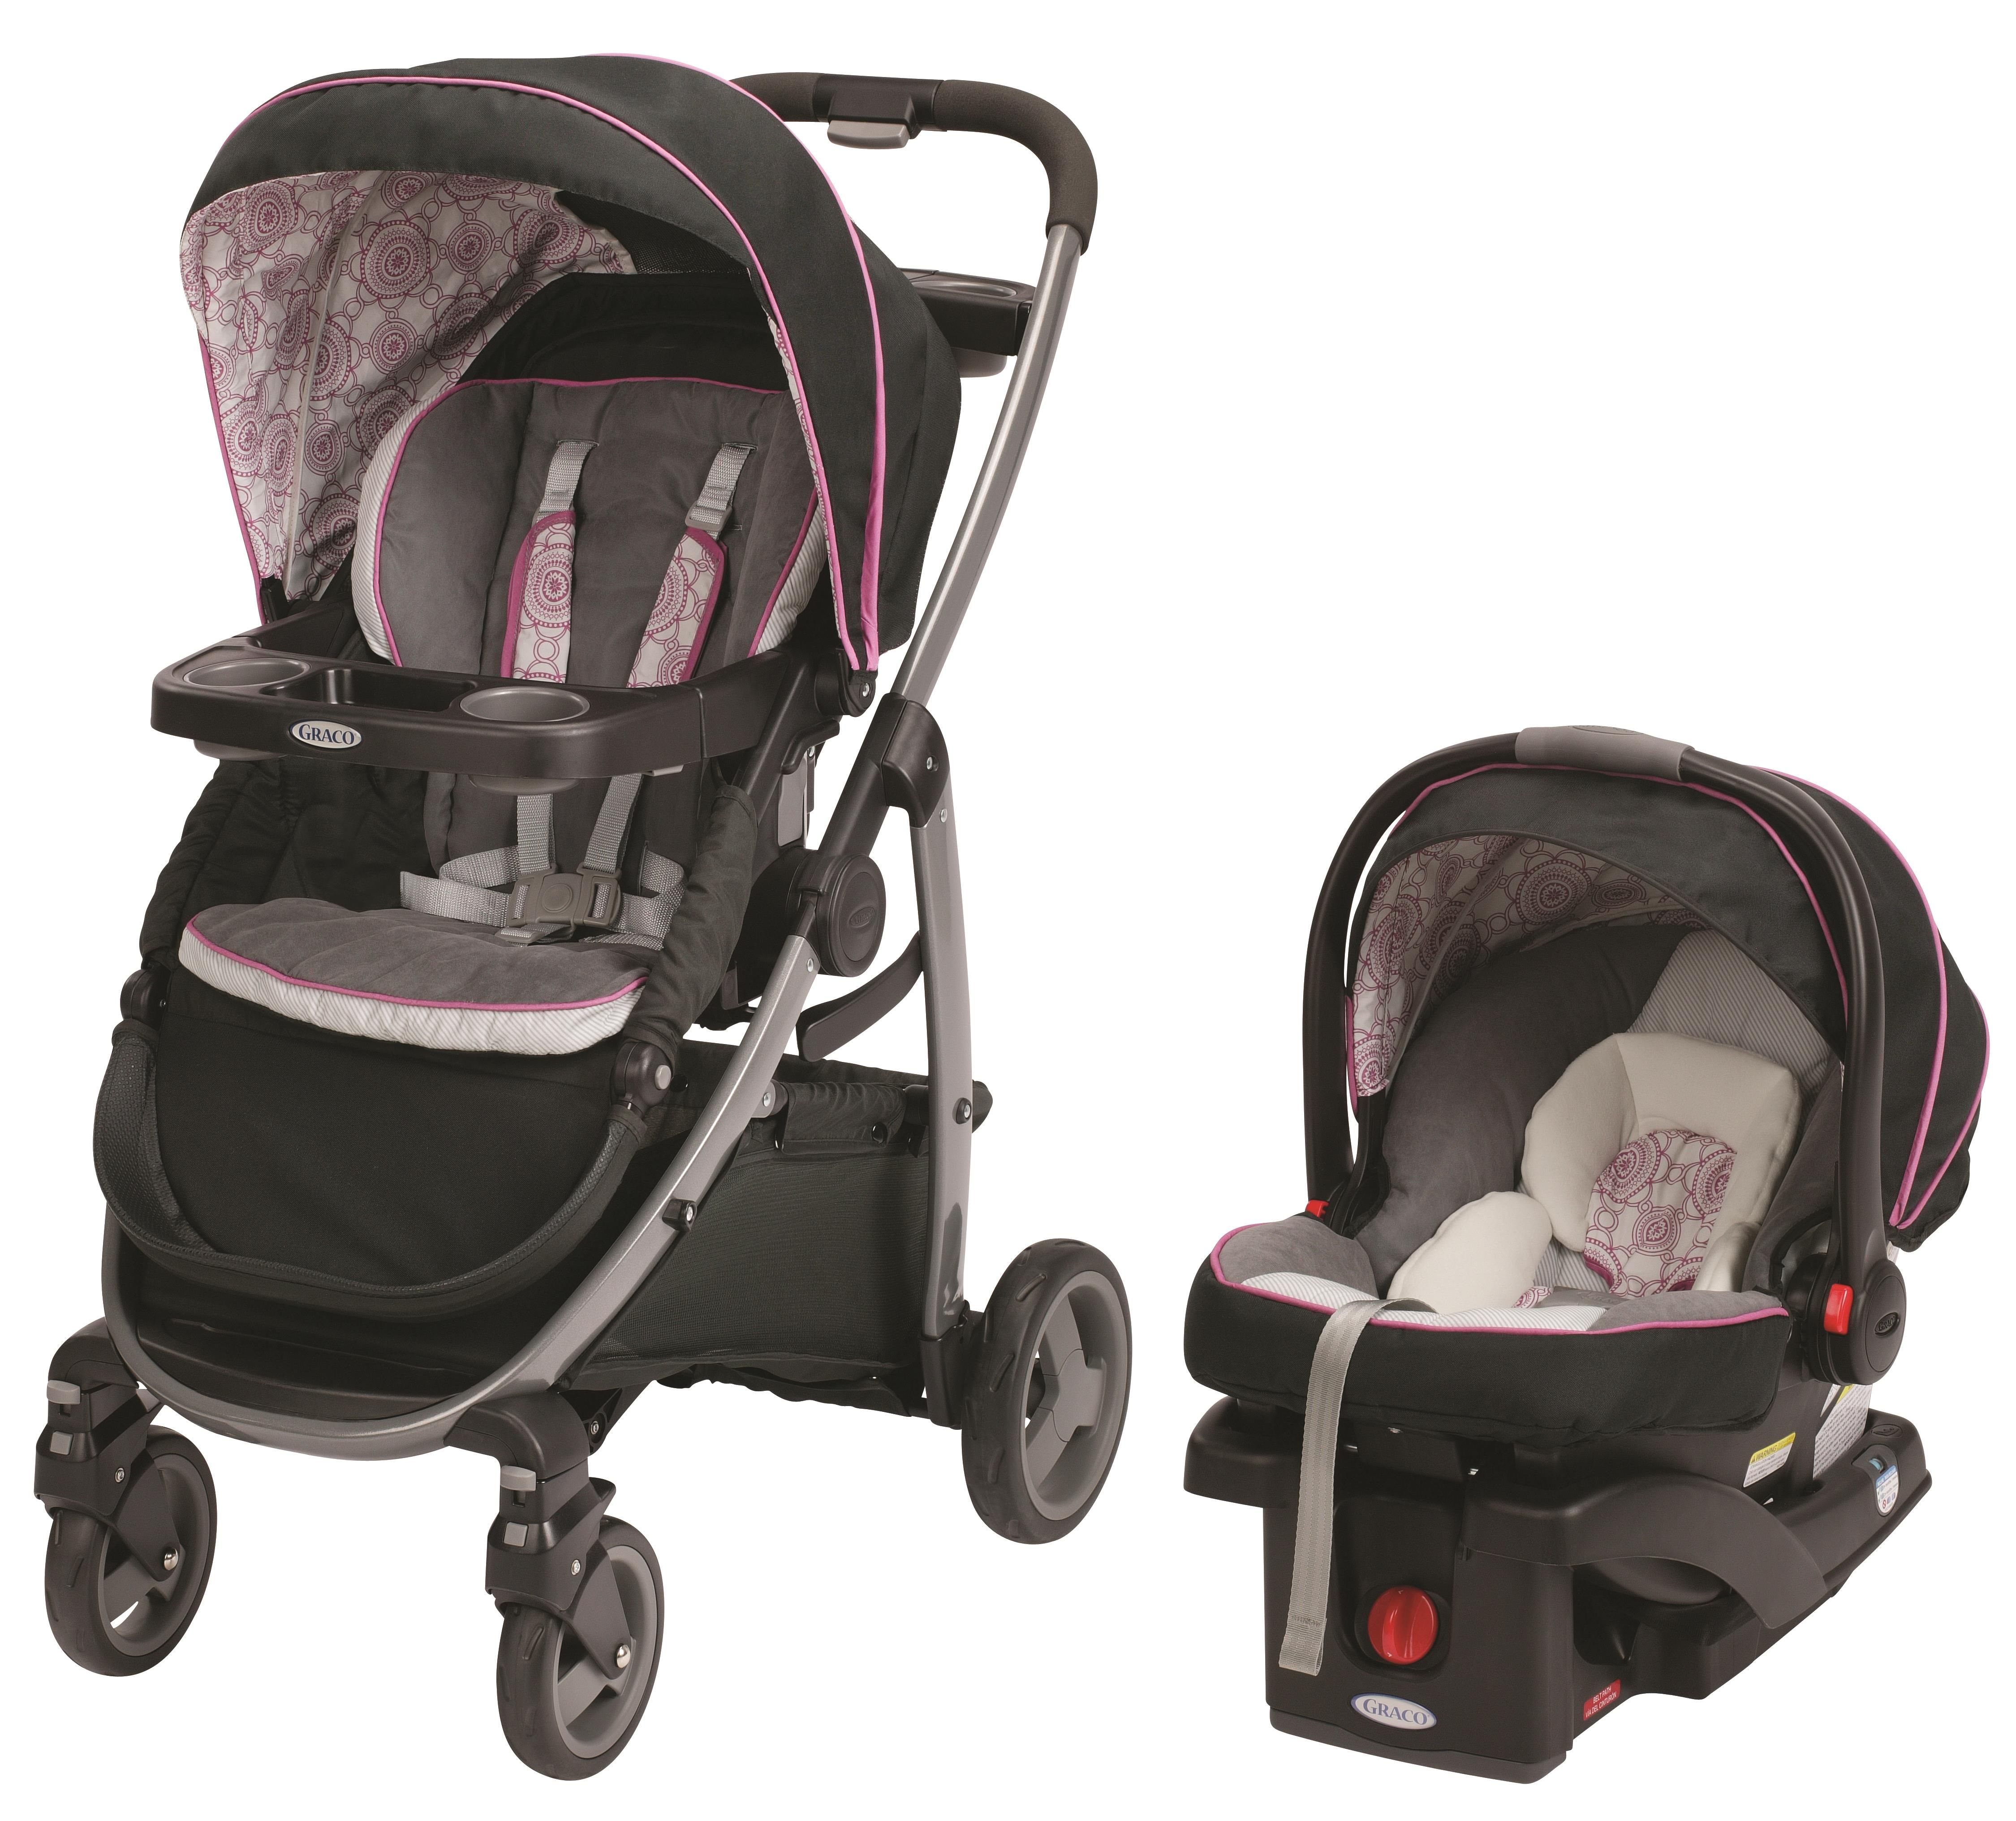 Graco 174 Modes 3 In 1 Stroller In Fashionable Pink And